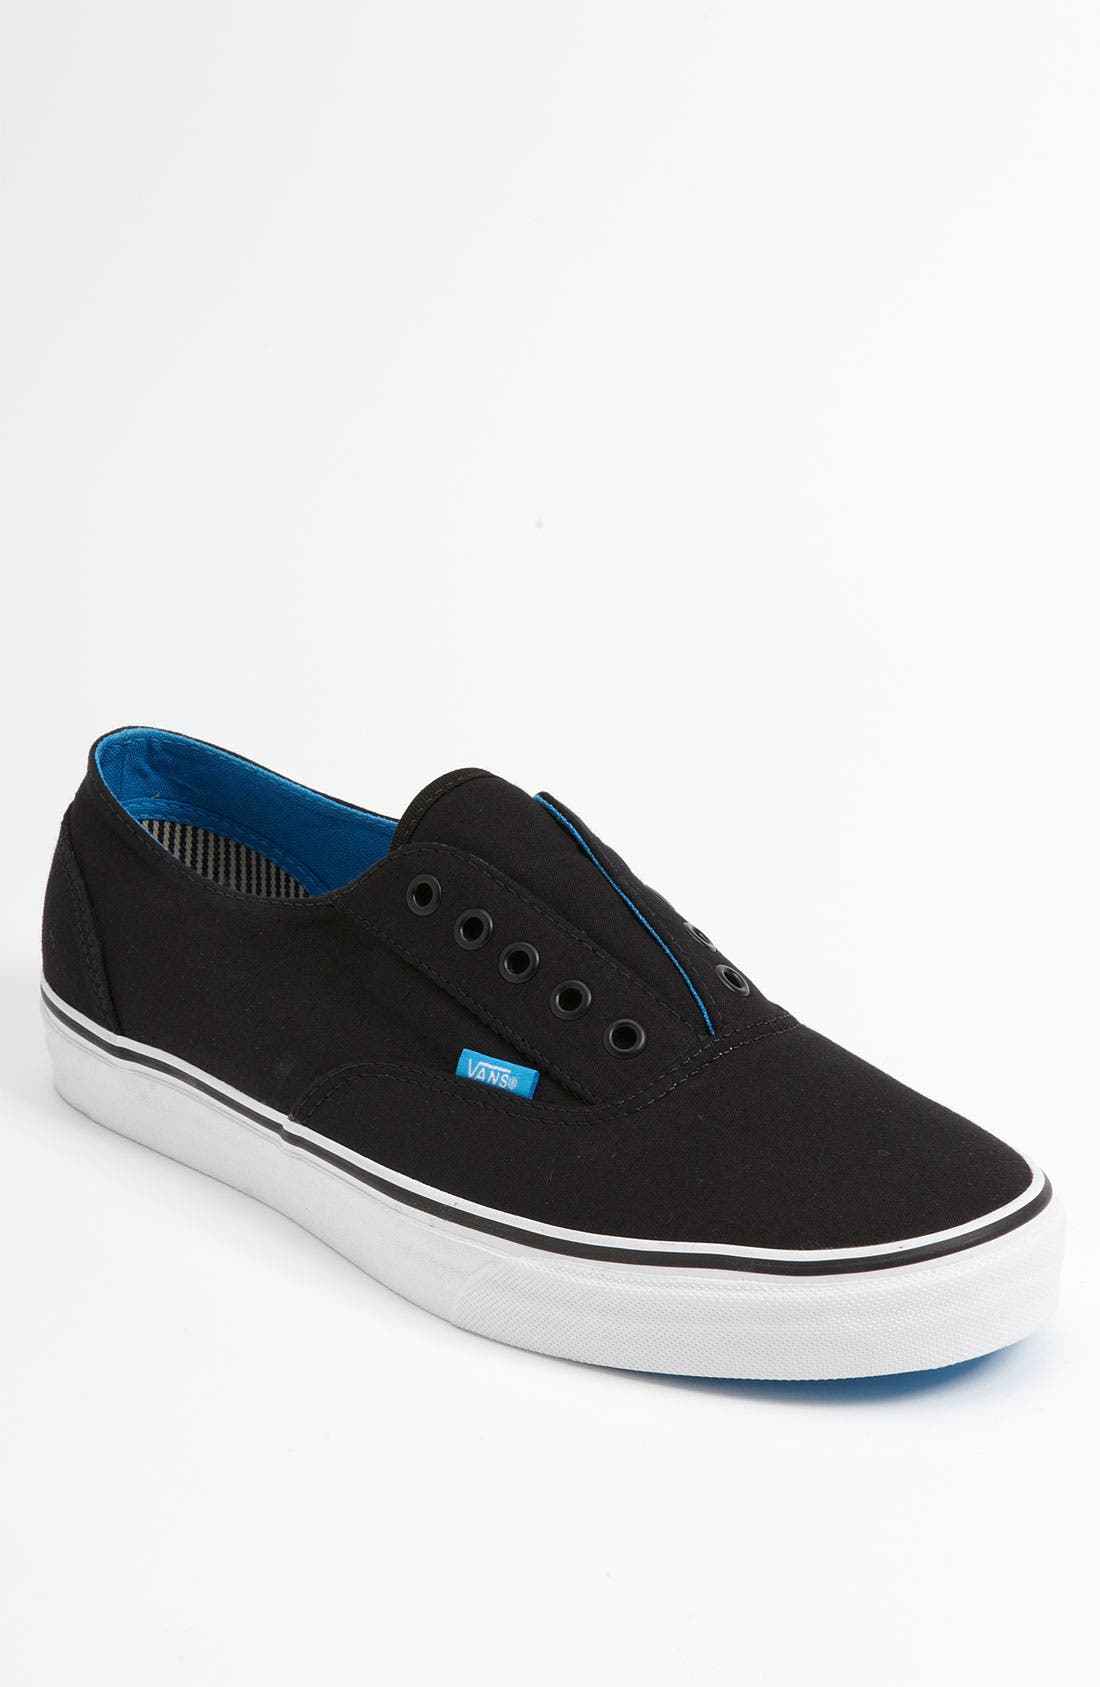 Main Image - Vans 'Era Laceless CA' Sneaker (Men)